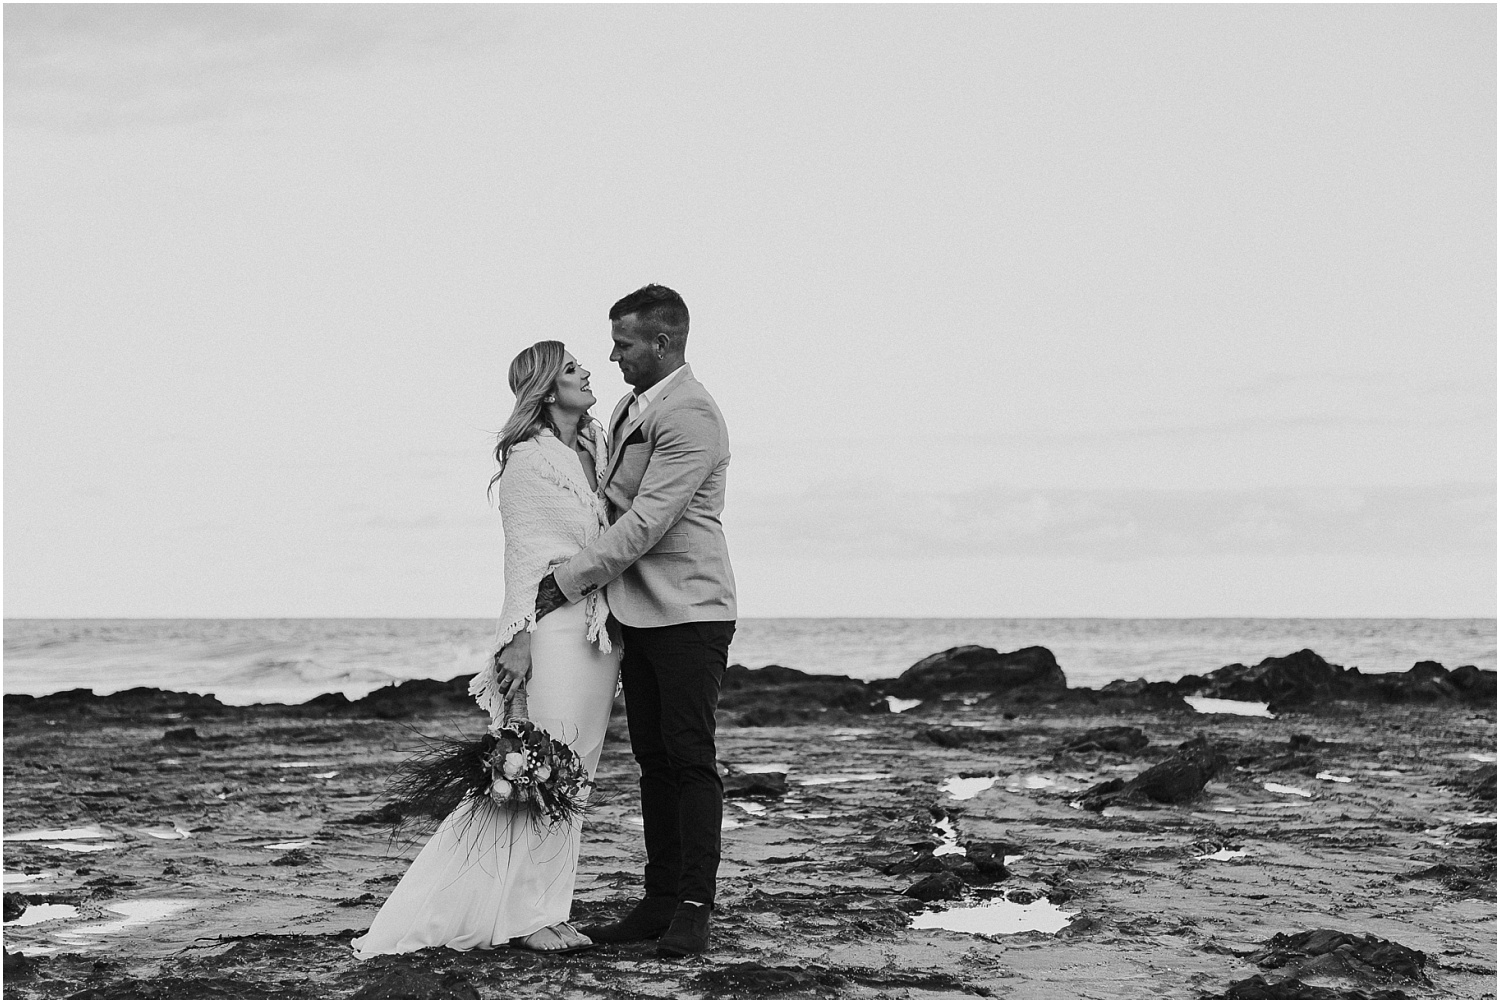 Renee and Ash's real elopement in Lorne on the Great Ocean Roadwith the ceremony at erskin falls._0104.jpg